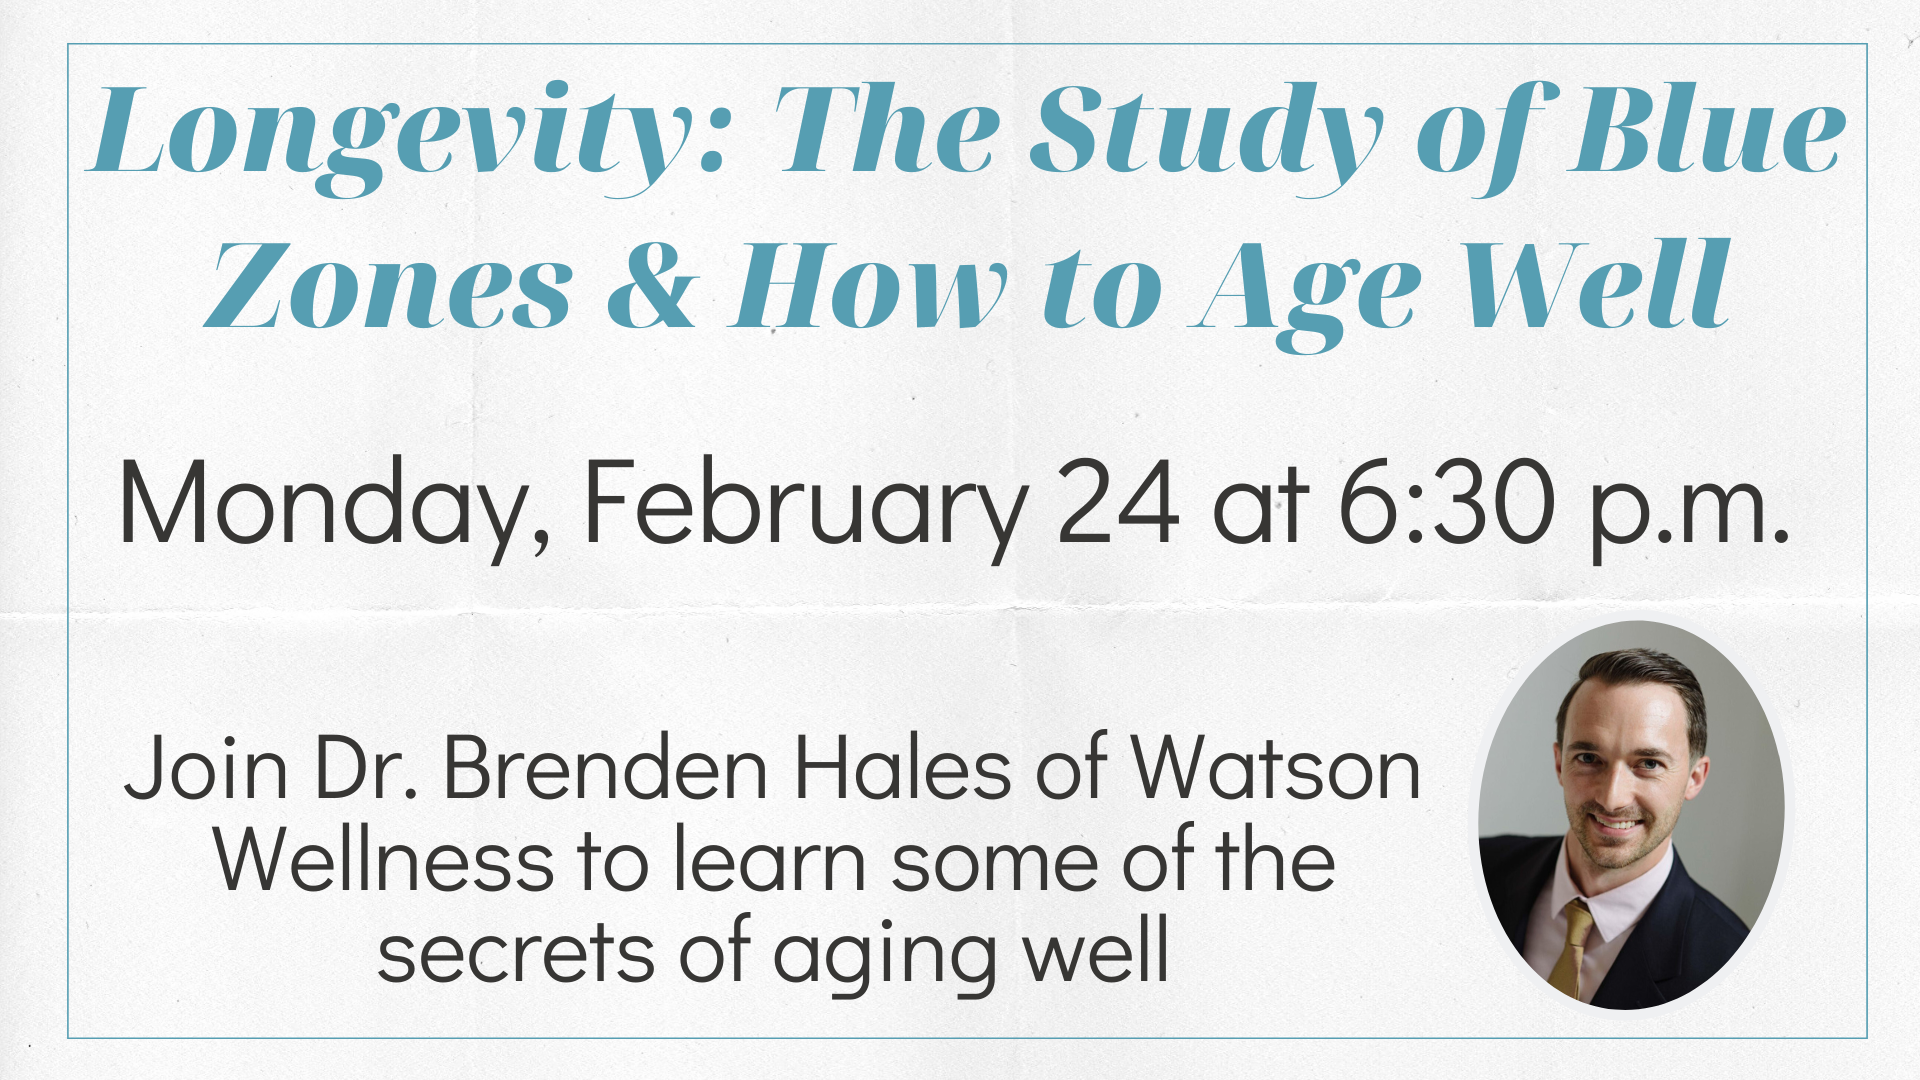 Longevity: The Study of Blue Zones & How to Age Well